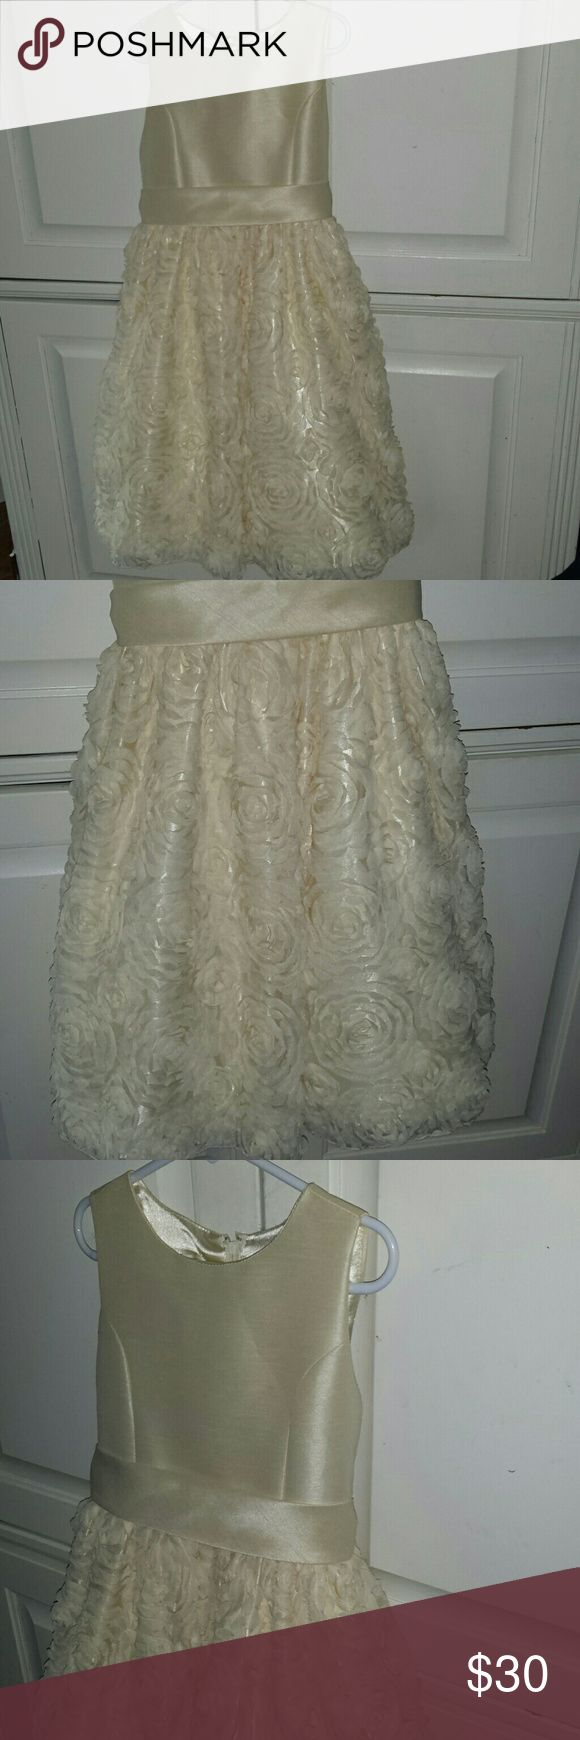 Gorgeous Easter/Special Occasion Dress Pale yellow special occasion little girls dress Raised flower skirt with pettiskirt for fullness  Sash waist that tied in back Perfect condition, daughter wore once for pictures  Brand: American Princess  Size: 8 American Princess Dresses Formal